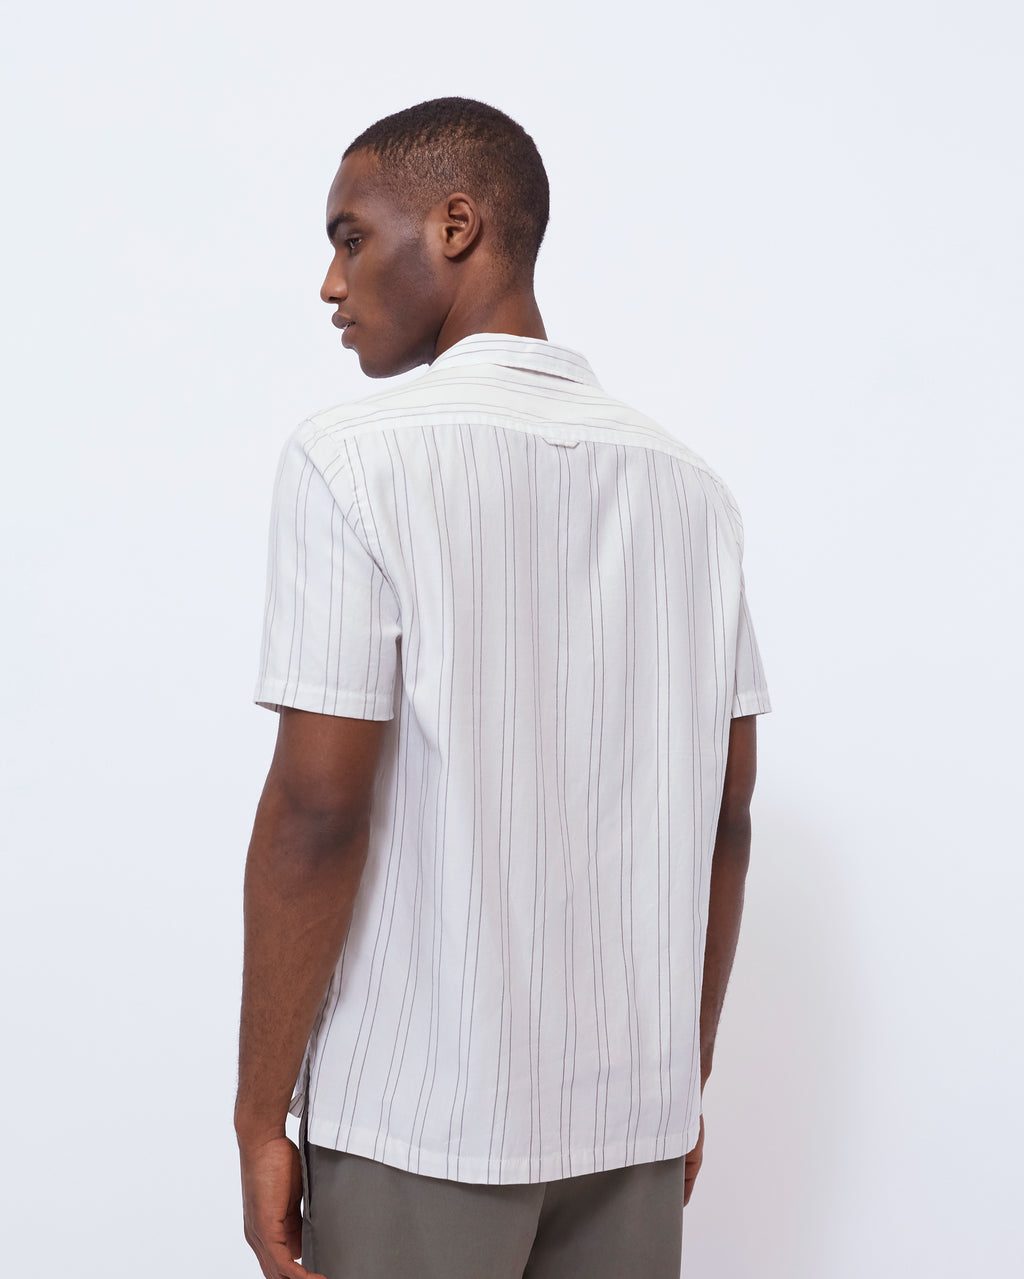 The Cabus Shirt in White/Navy Stripe